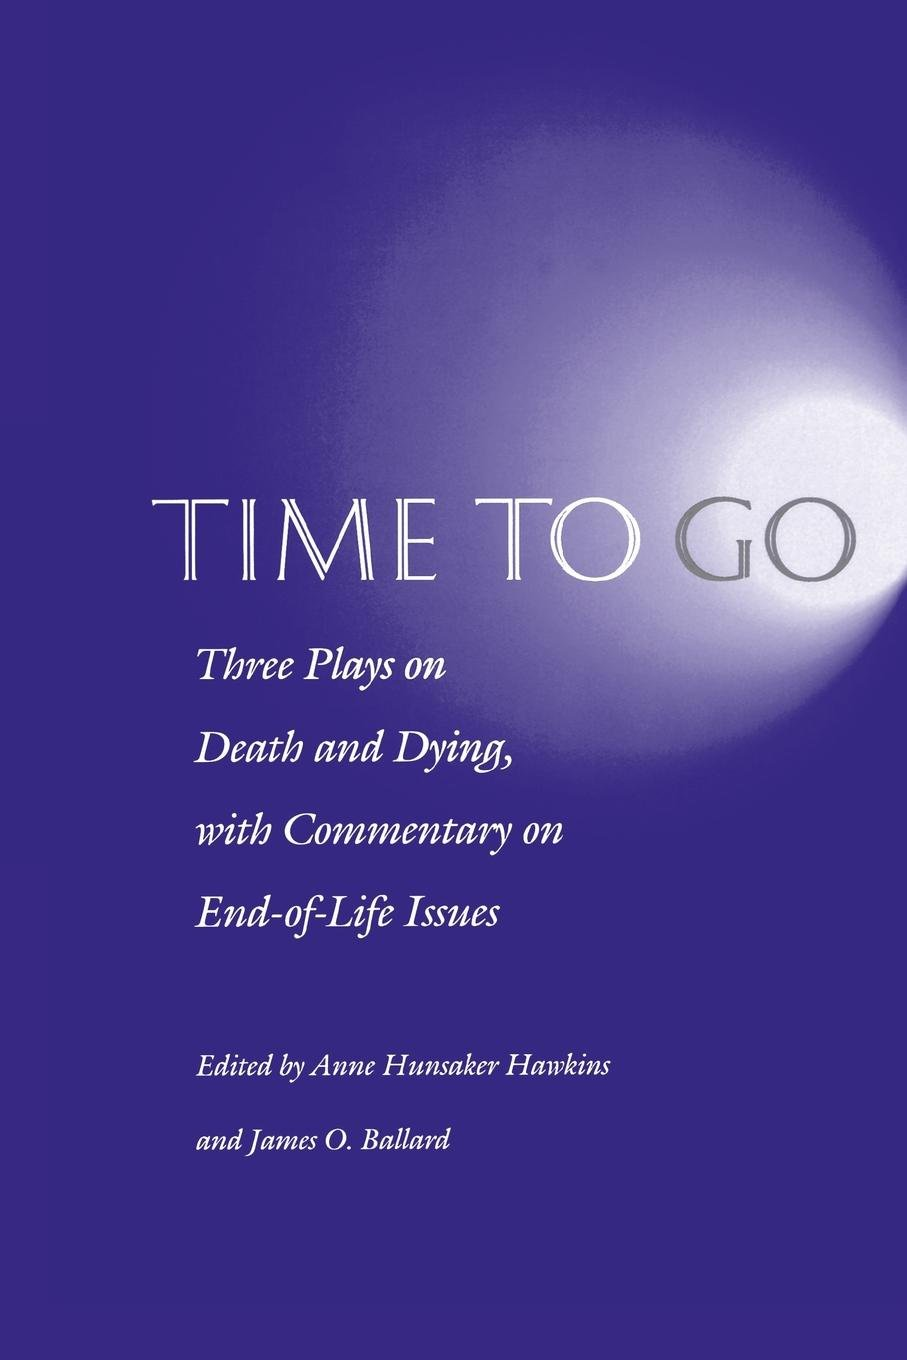 Time to Go: Three Plays on Death and Dying with Commentary on End-of-Life Issues